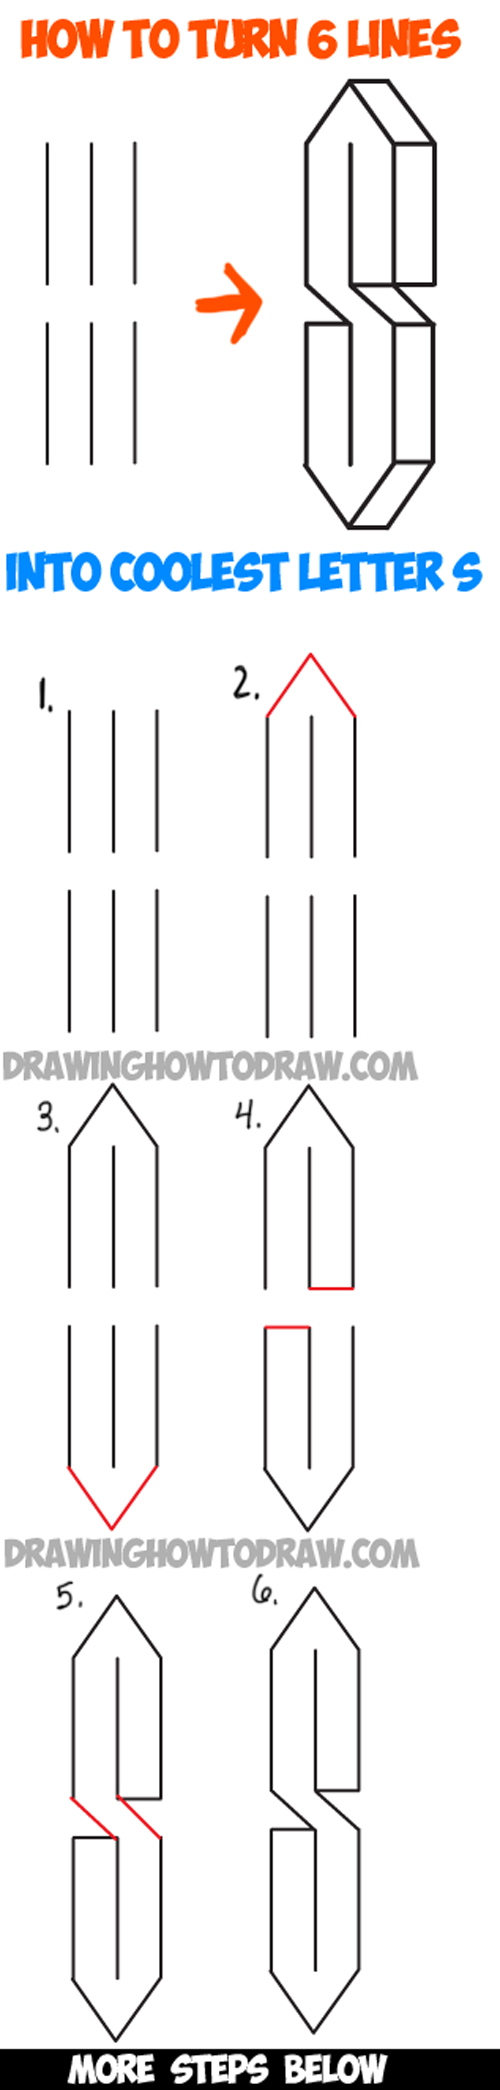 Simple Drawing Using Lines : Drawing lessons for kids archives how to draw step by